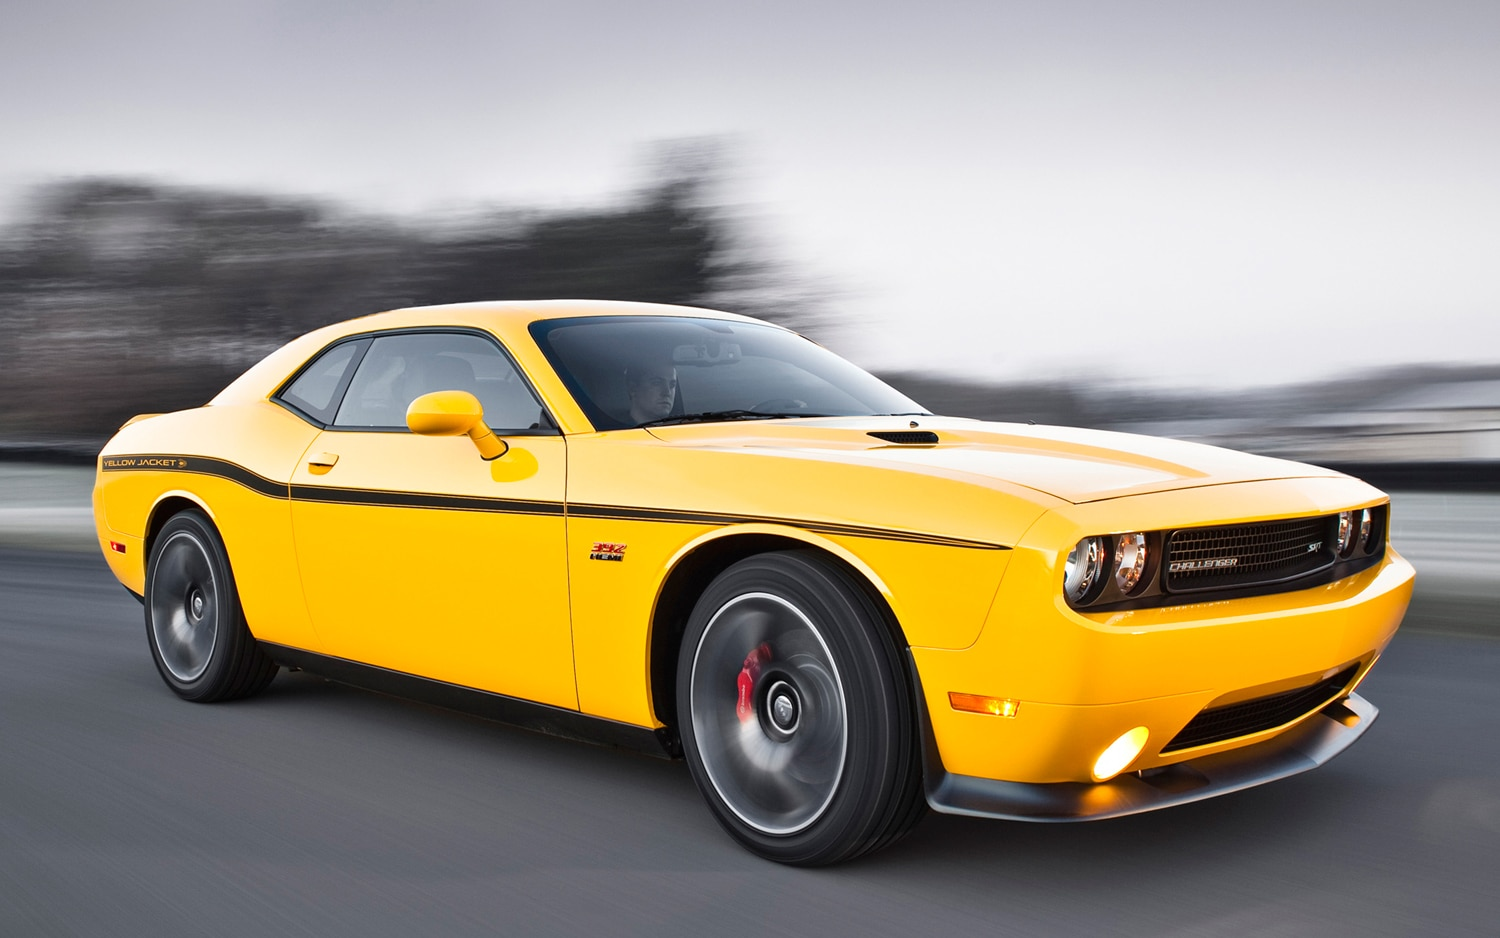 2012 Dodge Challenger SRT8 392 Yellow Jacket Front Three Quarter1